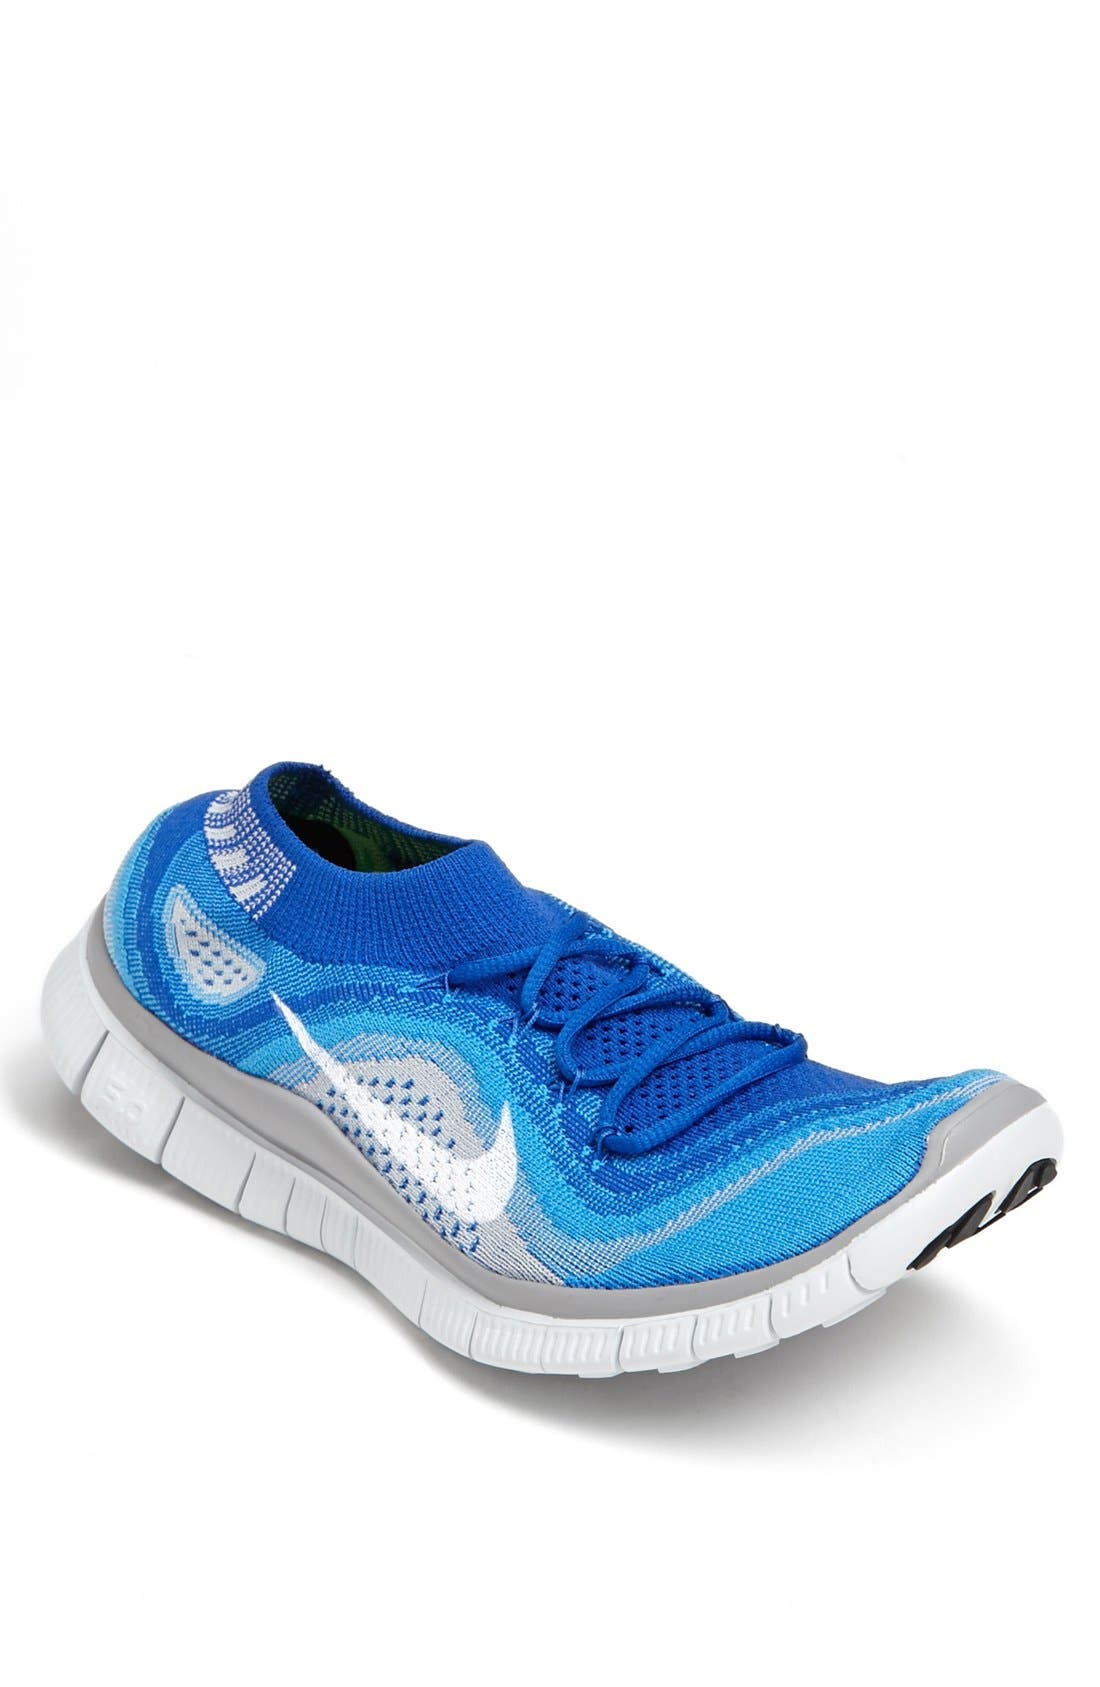 Main Image - Nike 'Free Flyknit+' Running Shoe (Men)